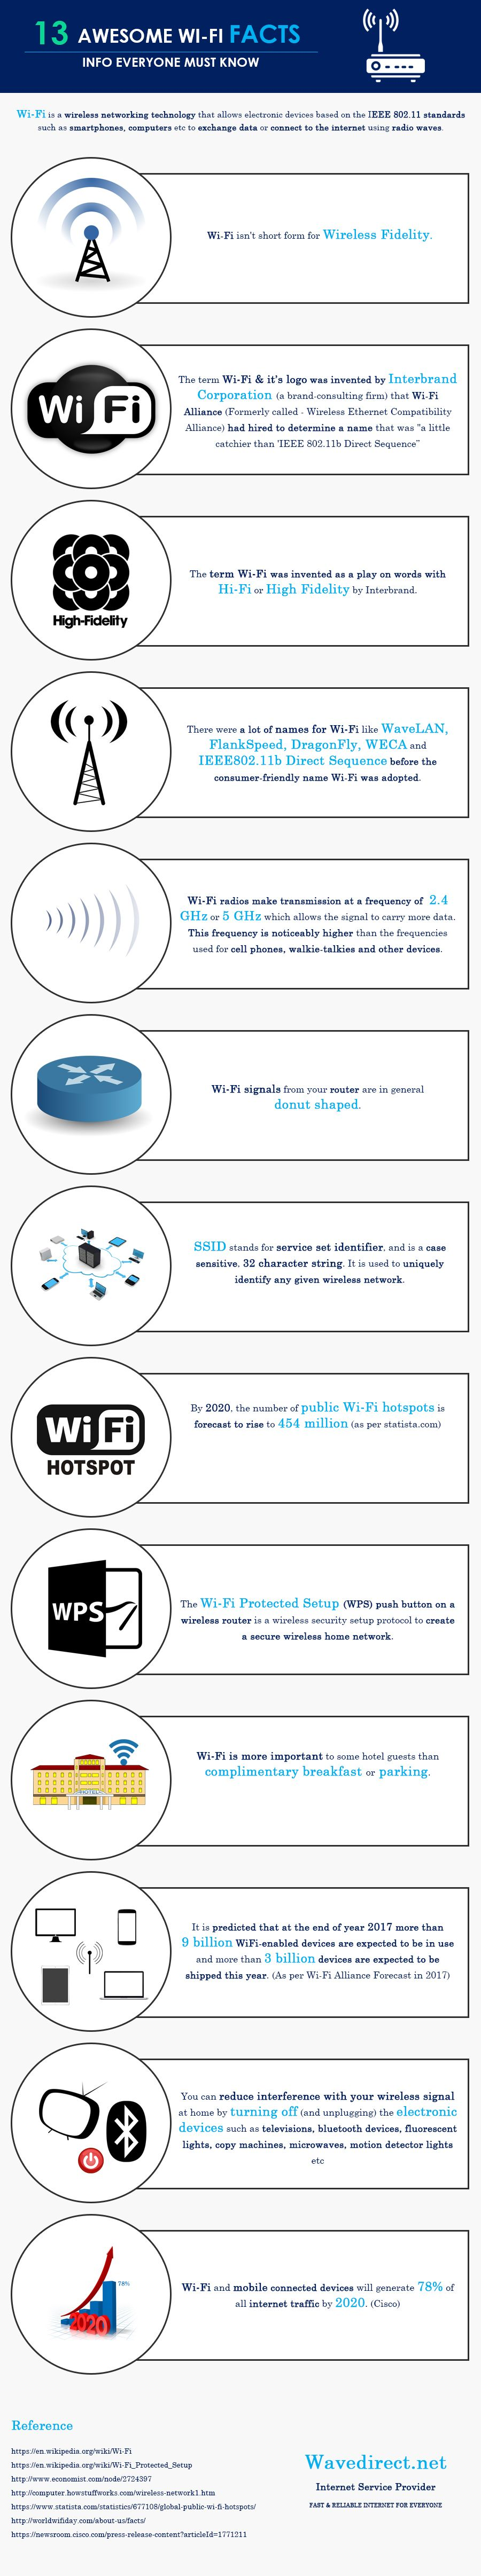 Did You Know That By 2020 The Number Of Public Wi Fi Hotspots Is Forecast To Rise To 454 Million Find All Amazin Networking Infographic Facts Astronomy Facts